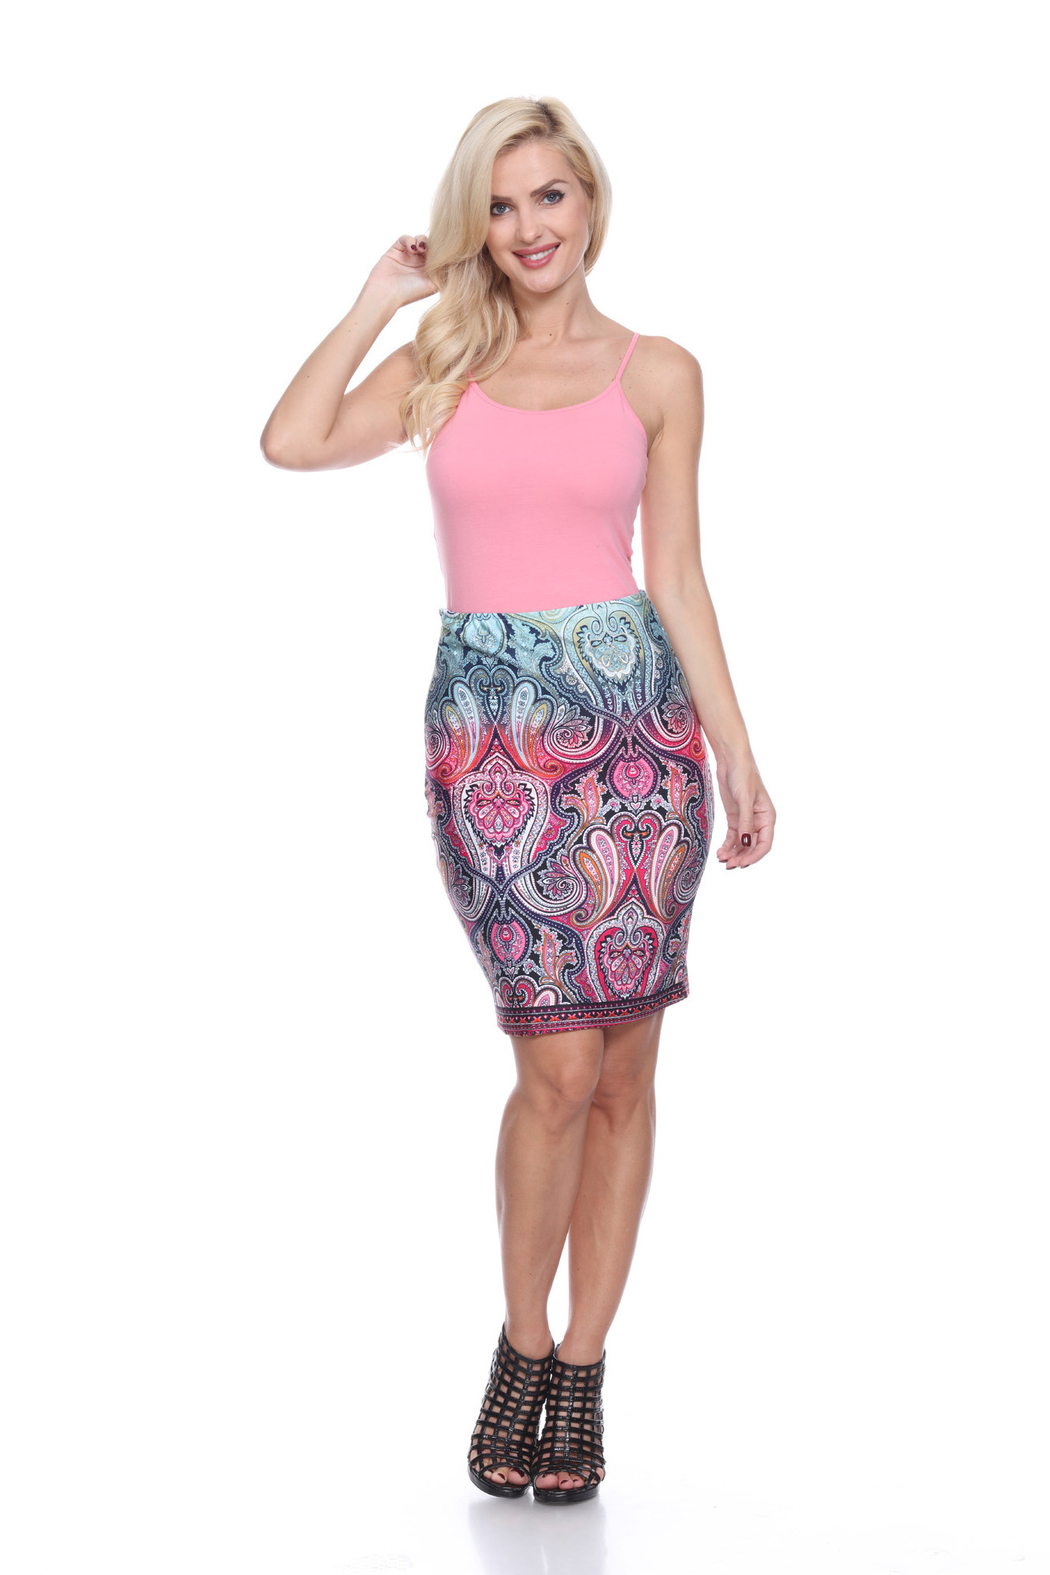 WhiteMark White Mark's Paisley Printed Pencil Skirt - Front Cropped Image